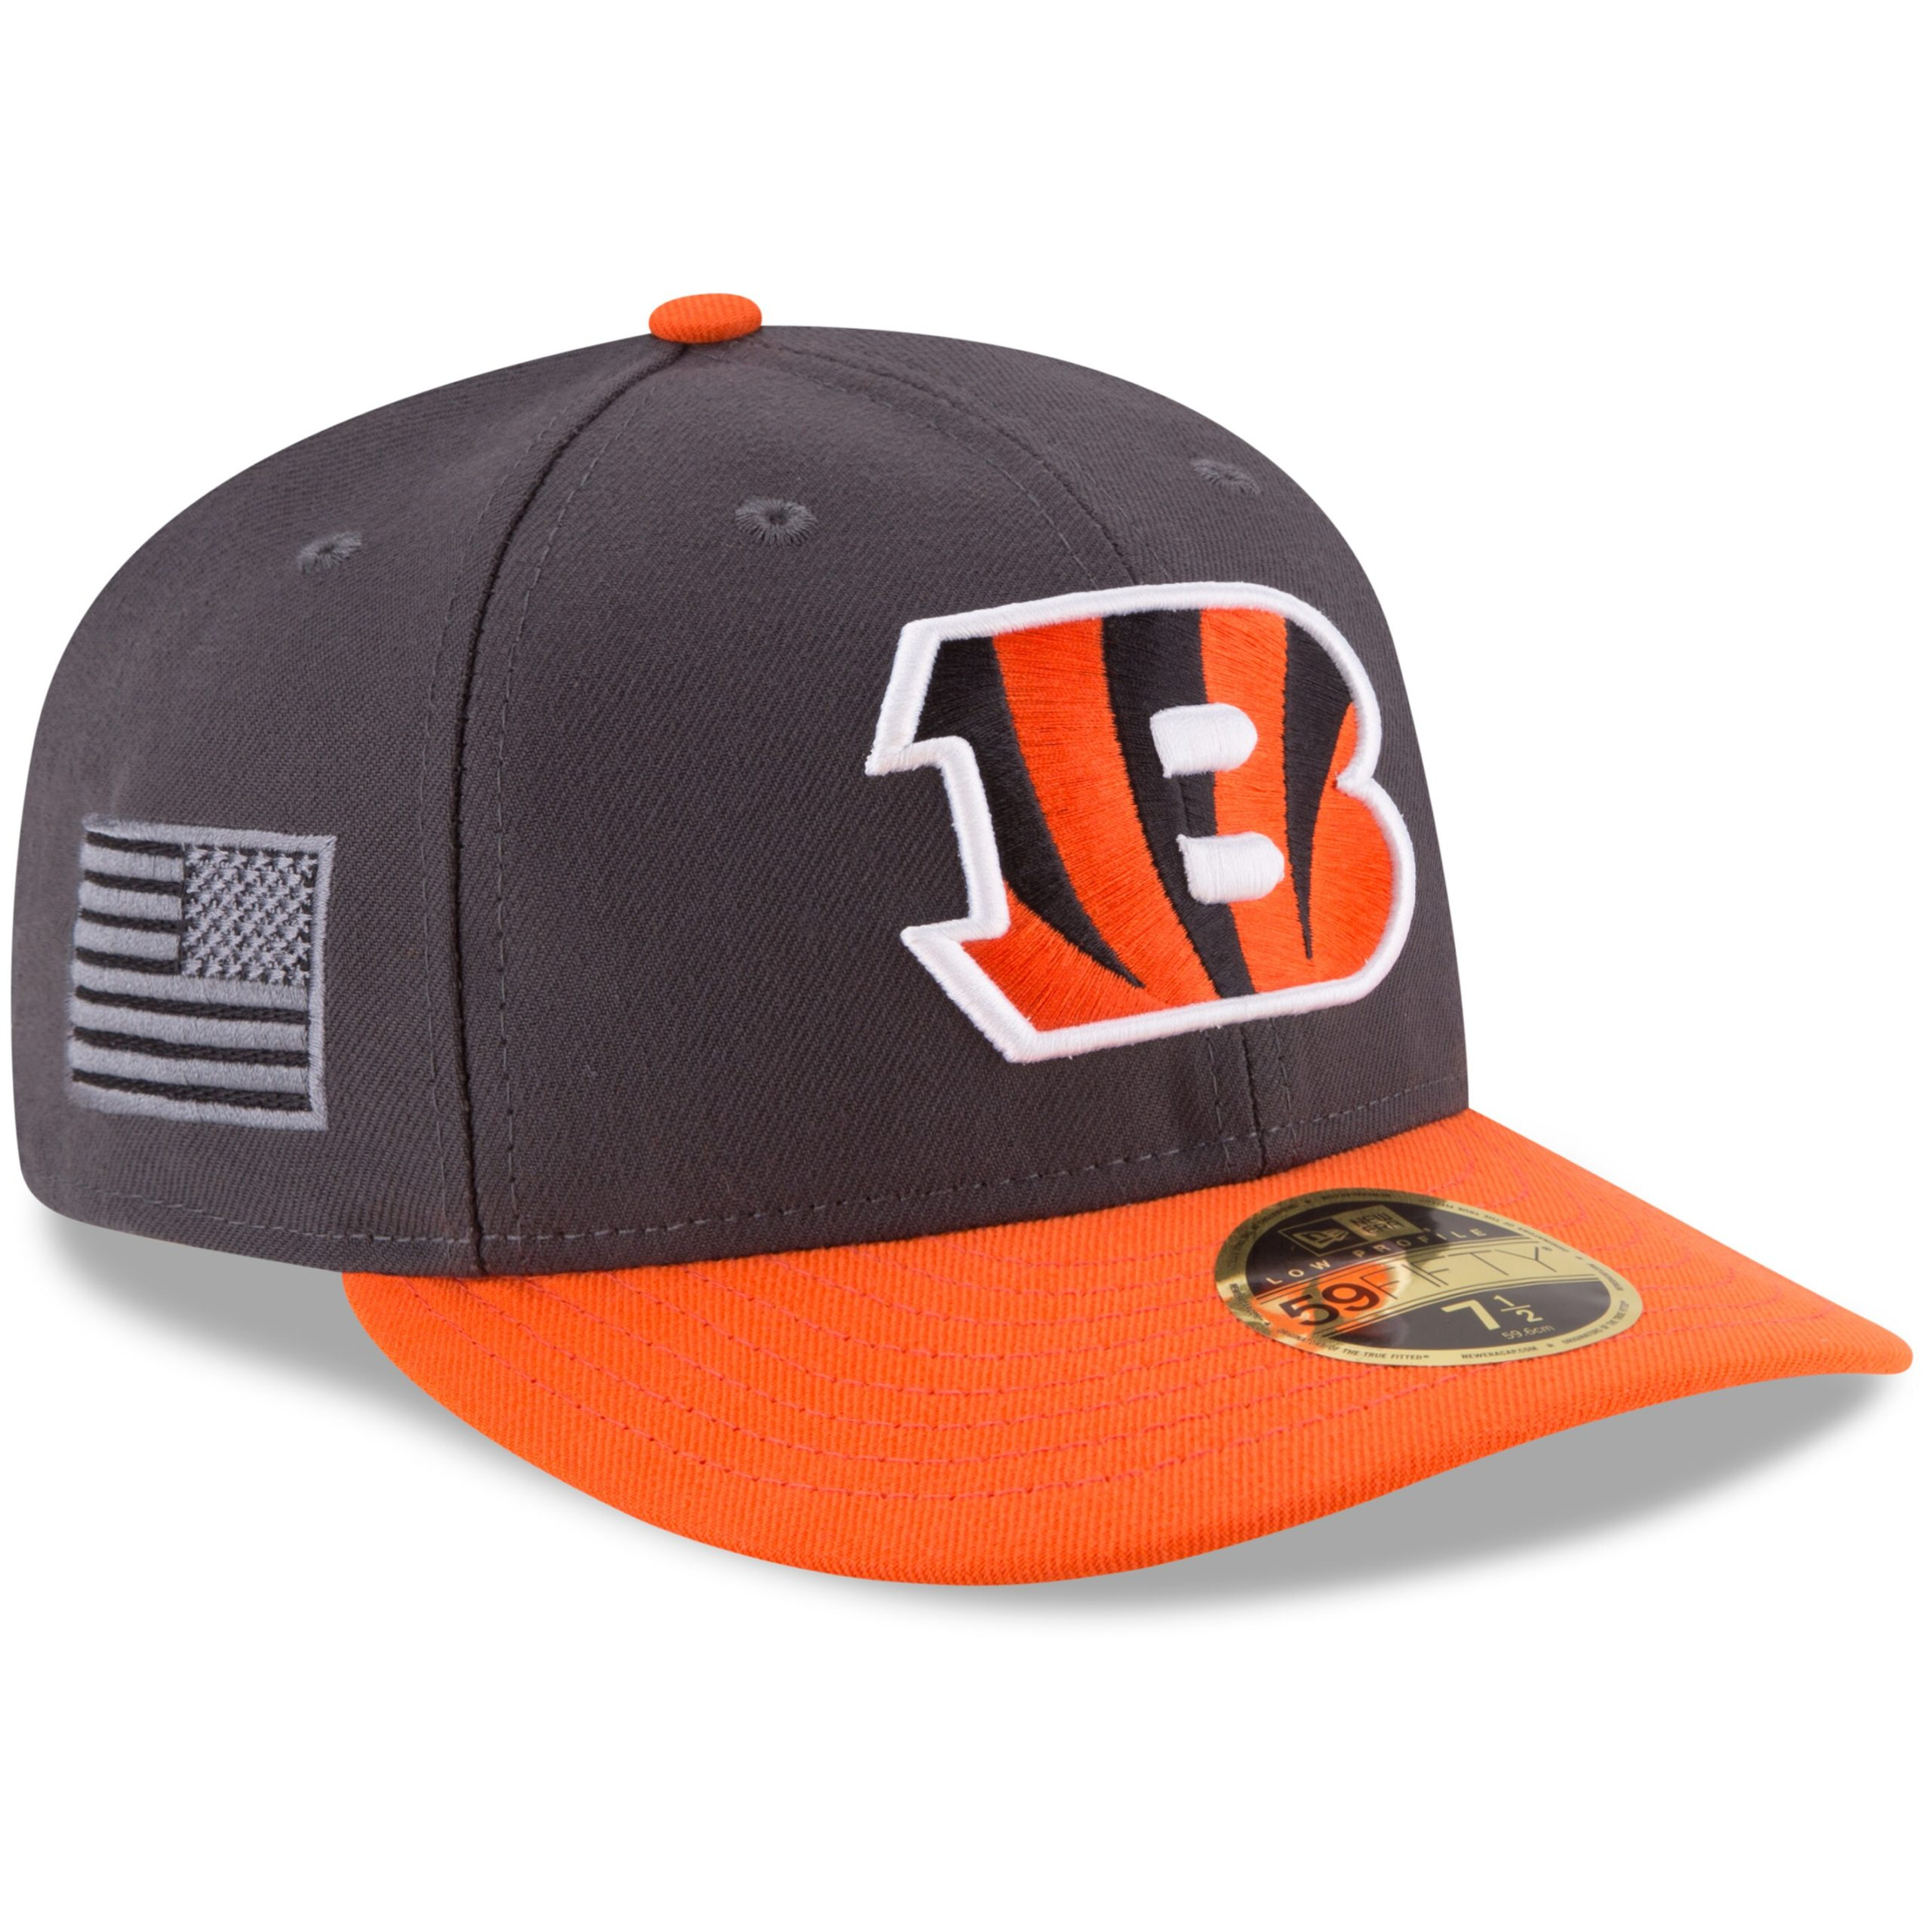 Cincinnati Bengals New Era Crafted In America Low Profile 59FIFTY Fitted Hat - Graphite